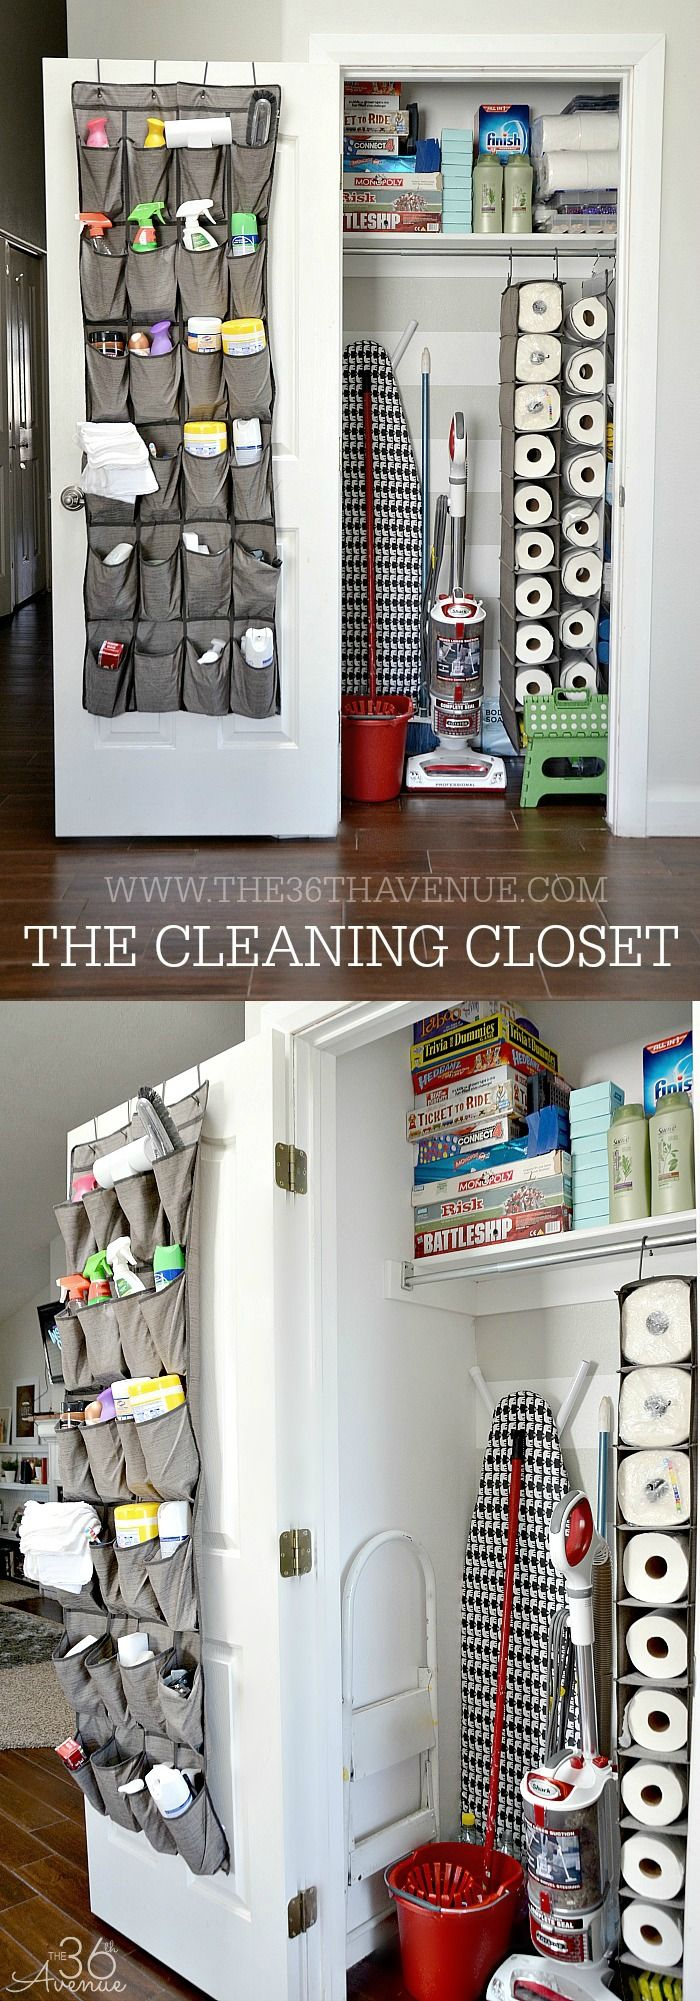 Cleaning Tips - DIY Cleaning Closet